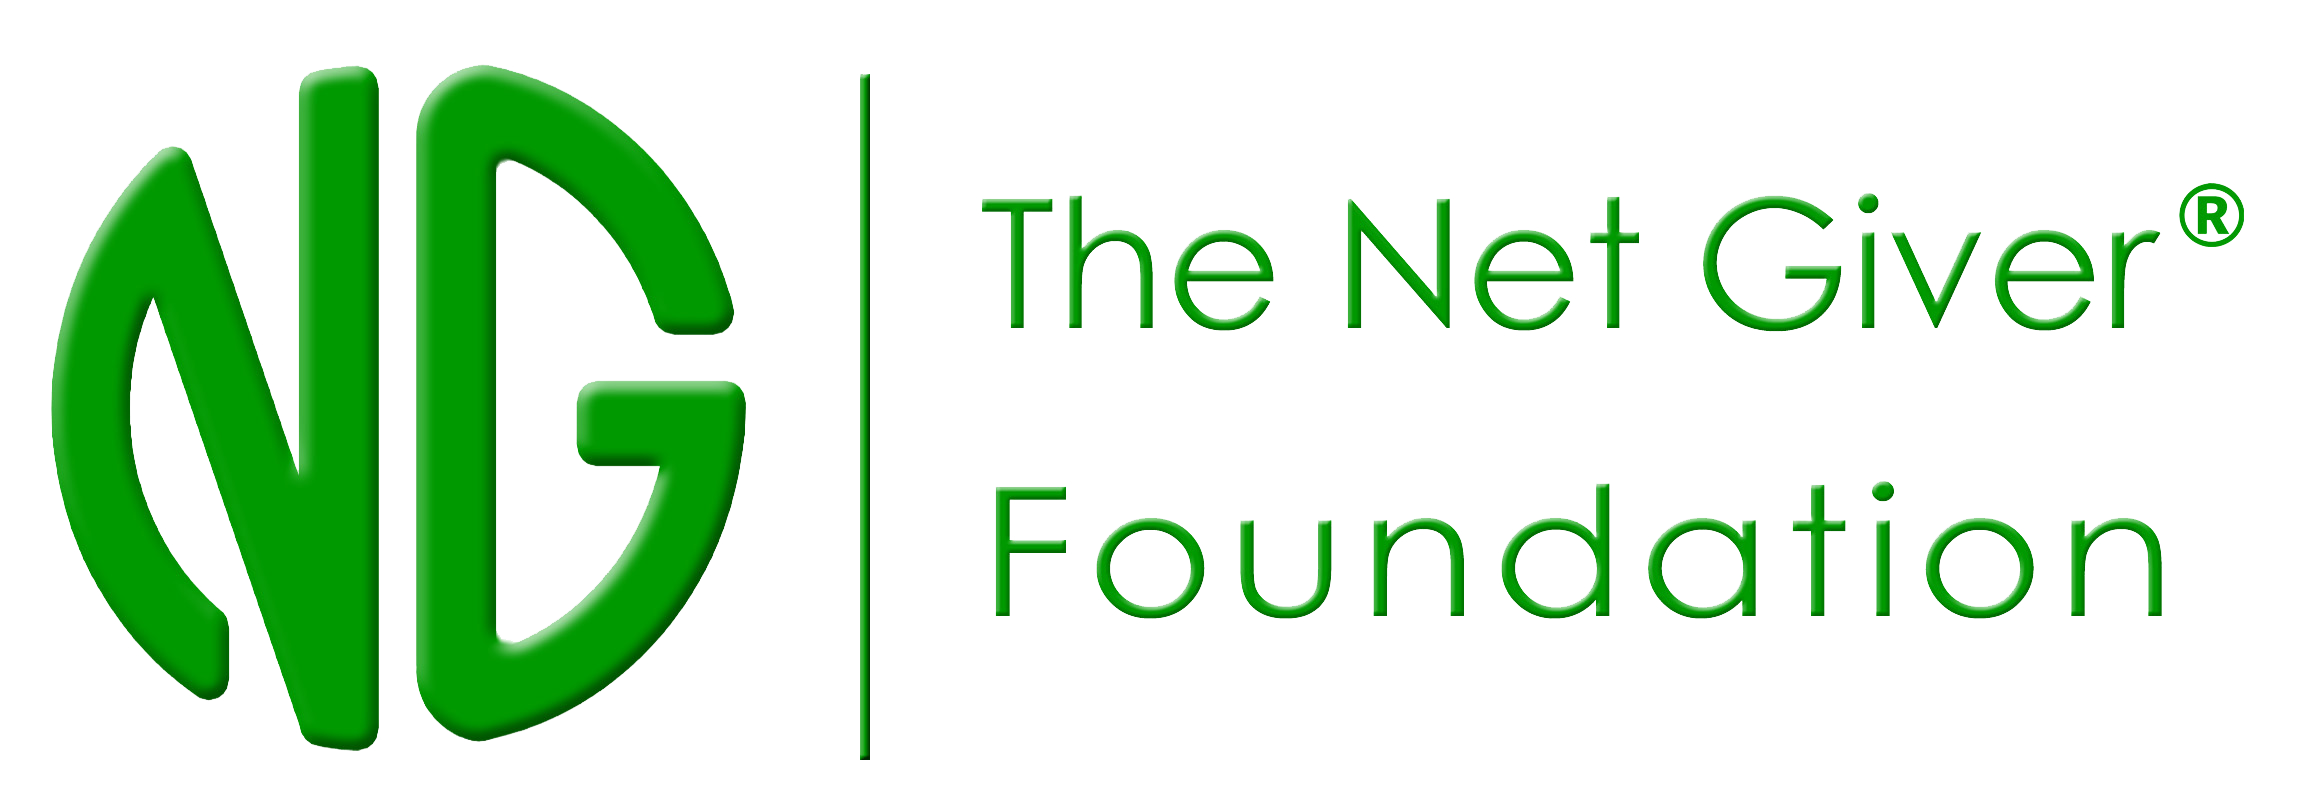 The Net Giver Foundation